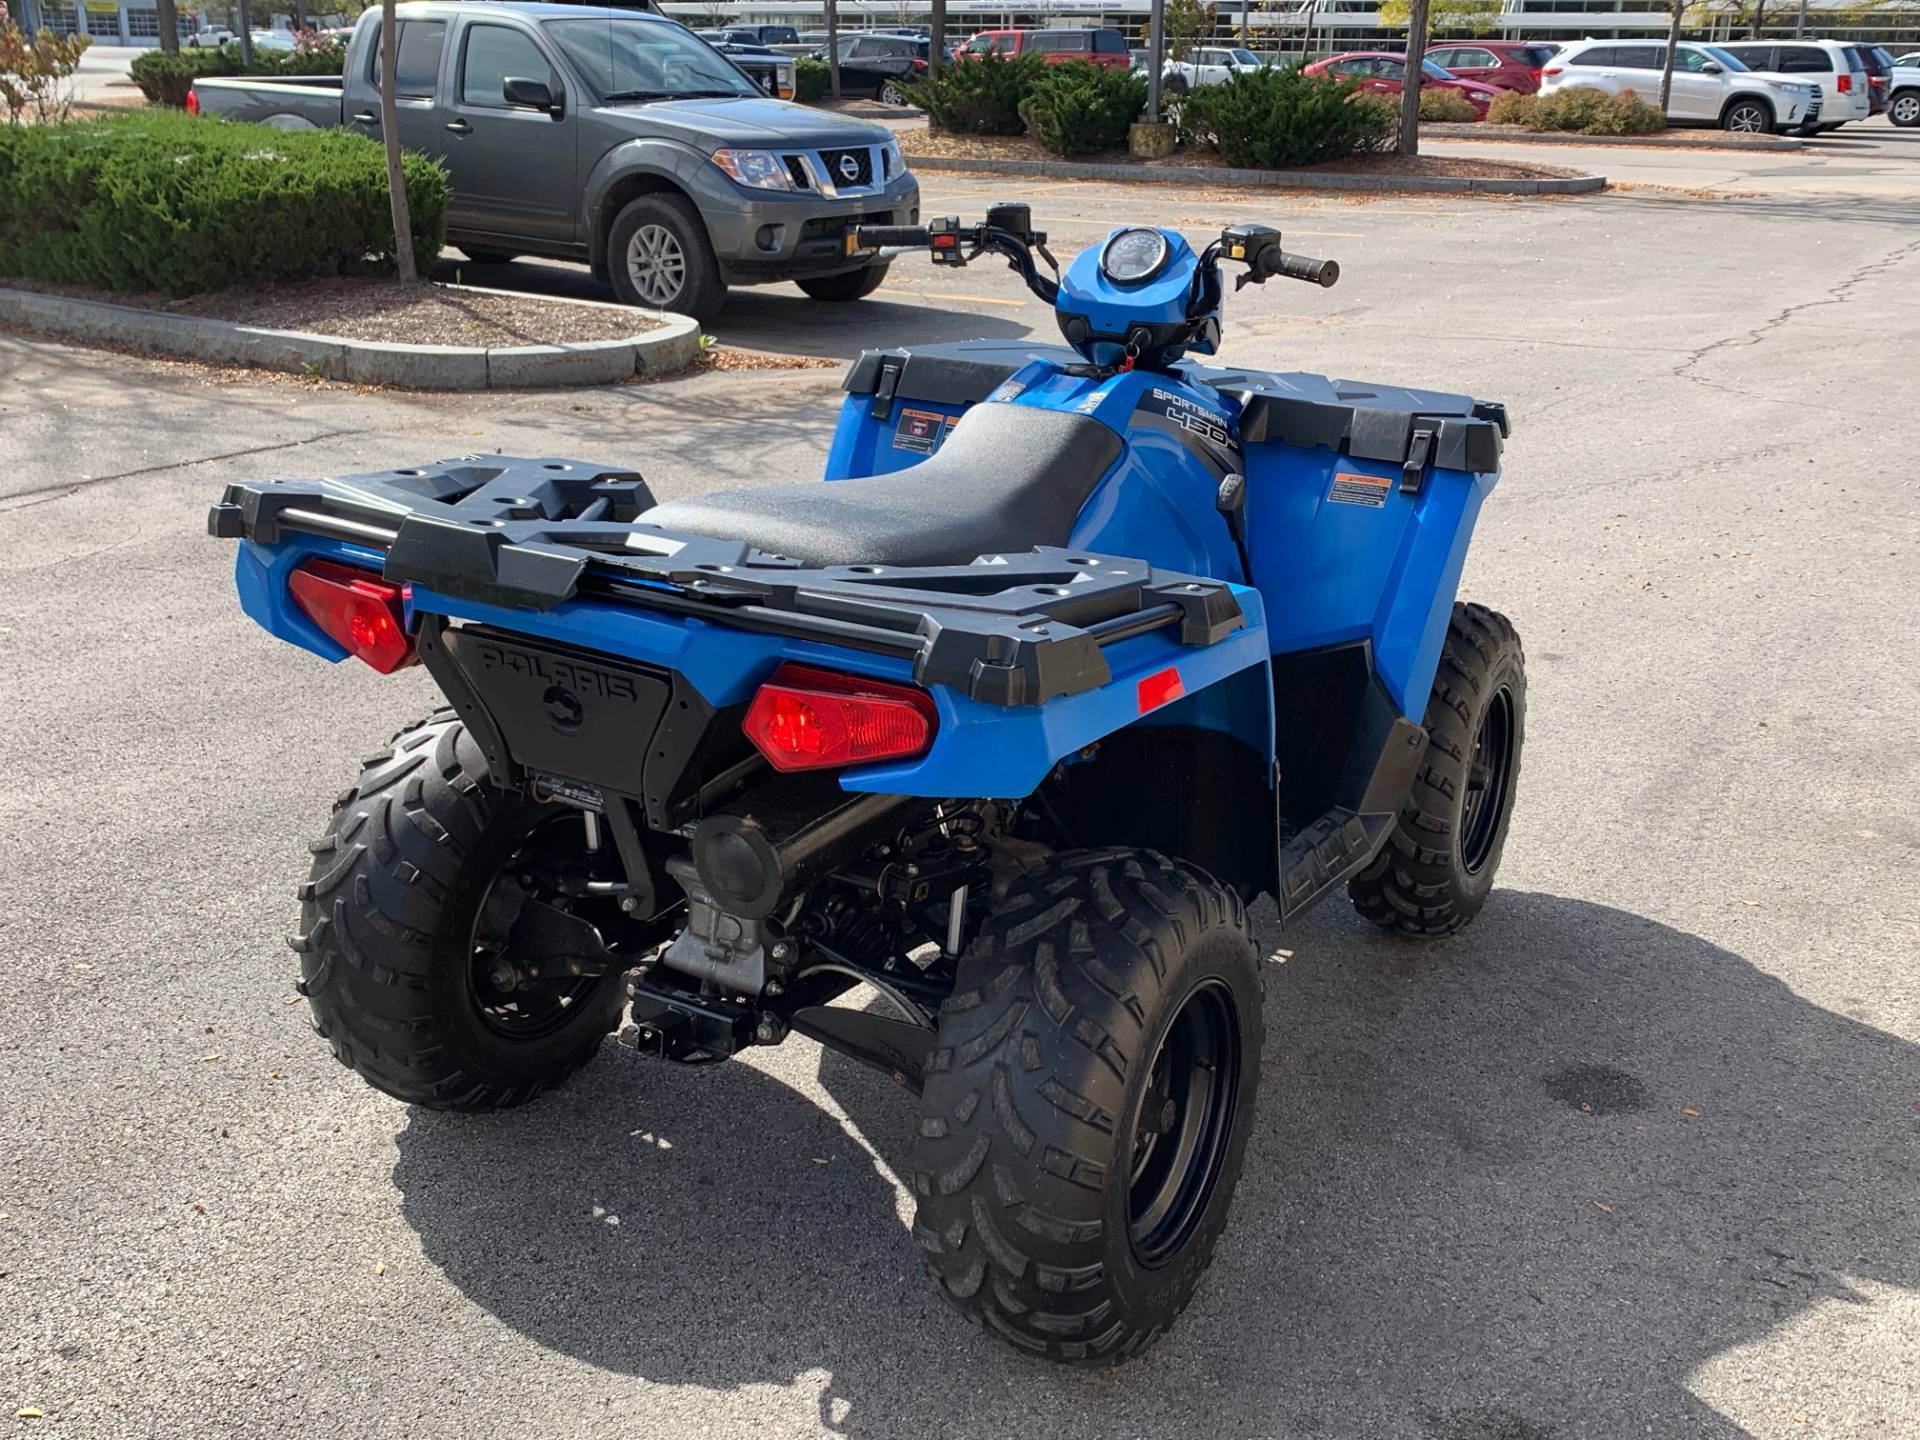 2017 Polaris Sportsman 450 H.O. in Herkimer, New York - Photo 8